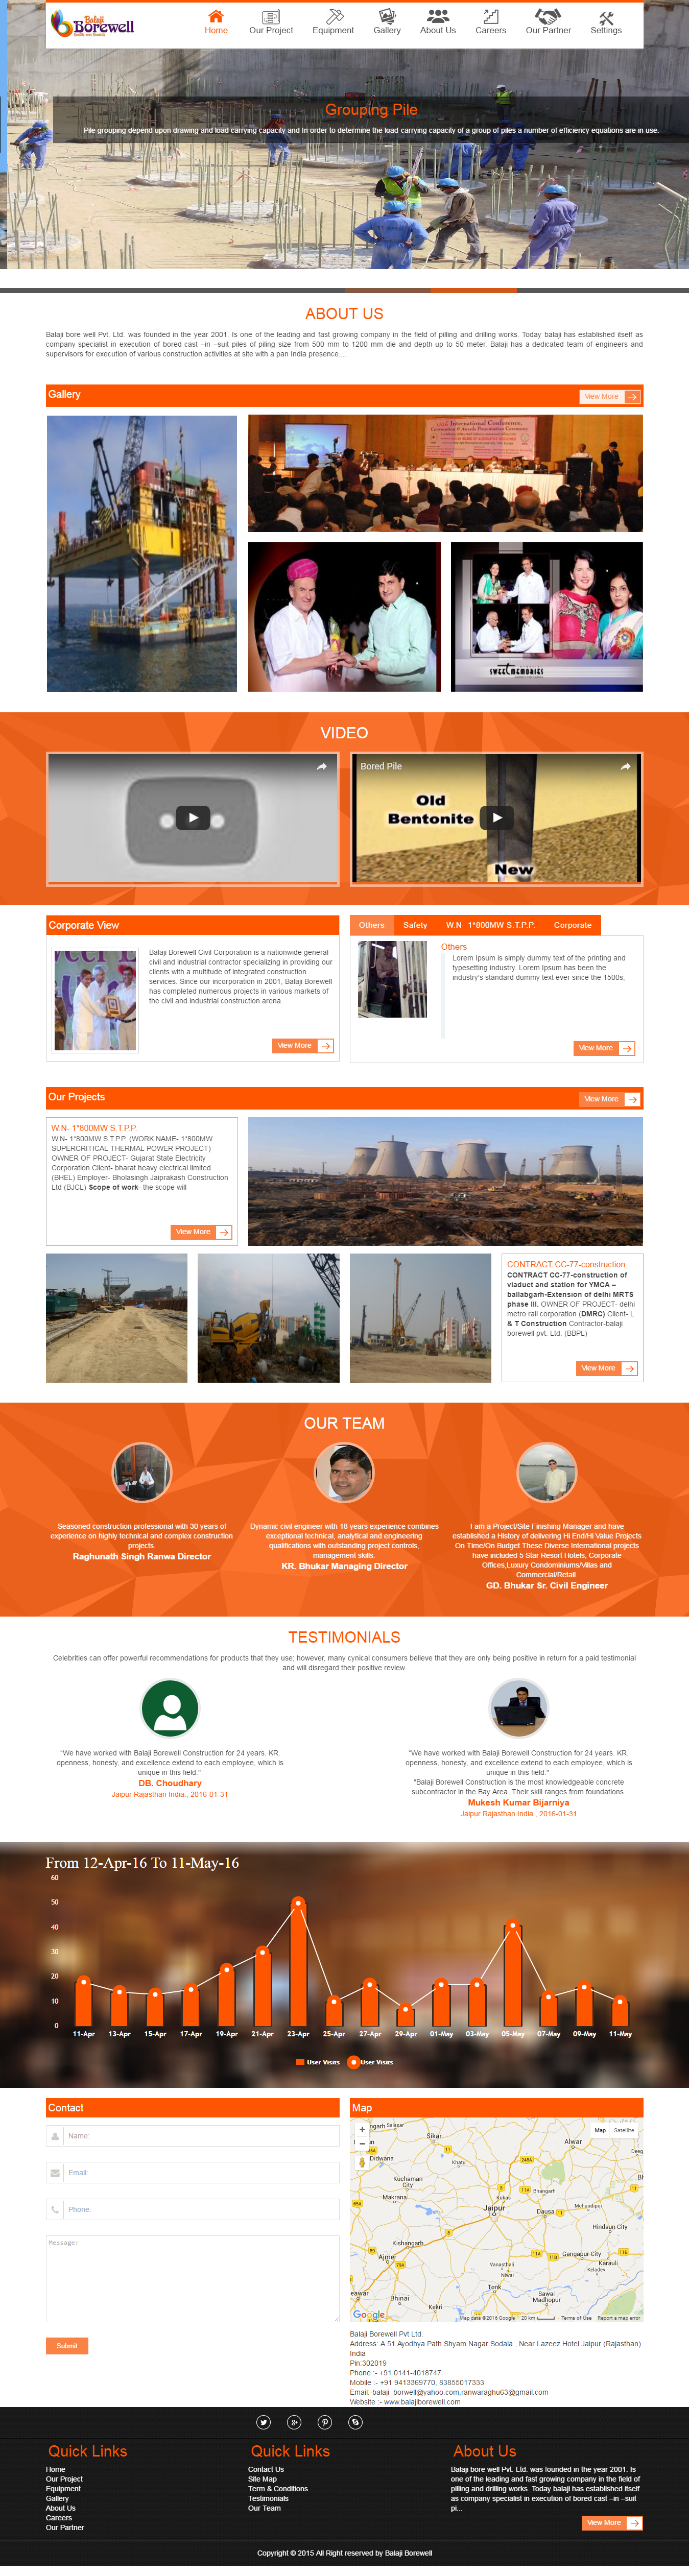 Website design and development for Borewell Company